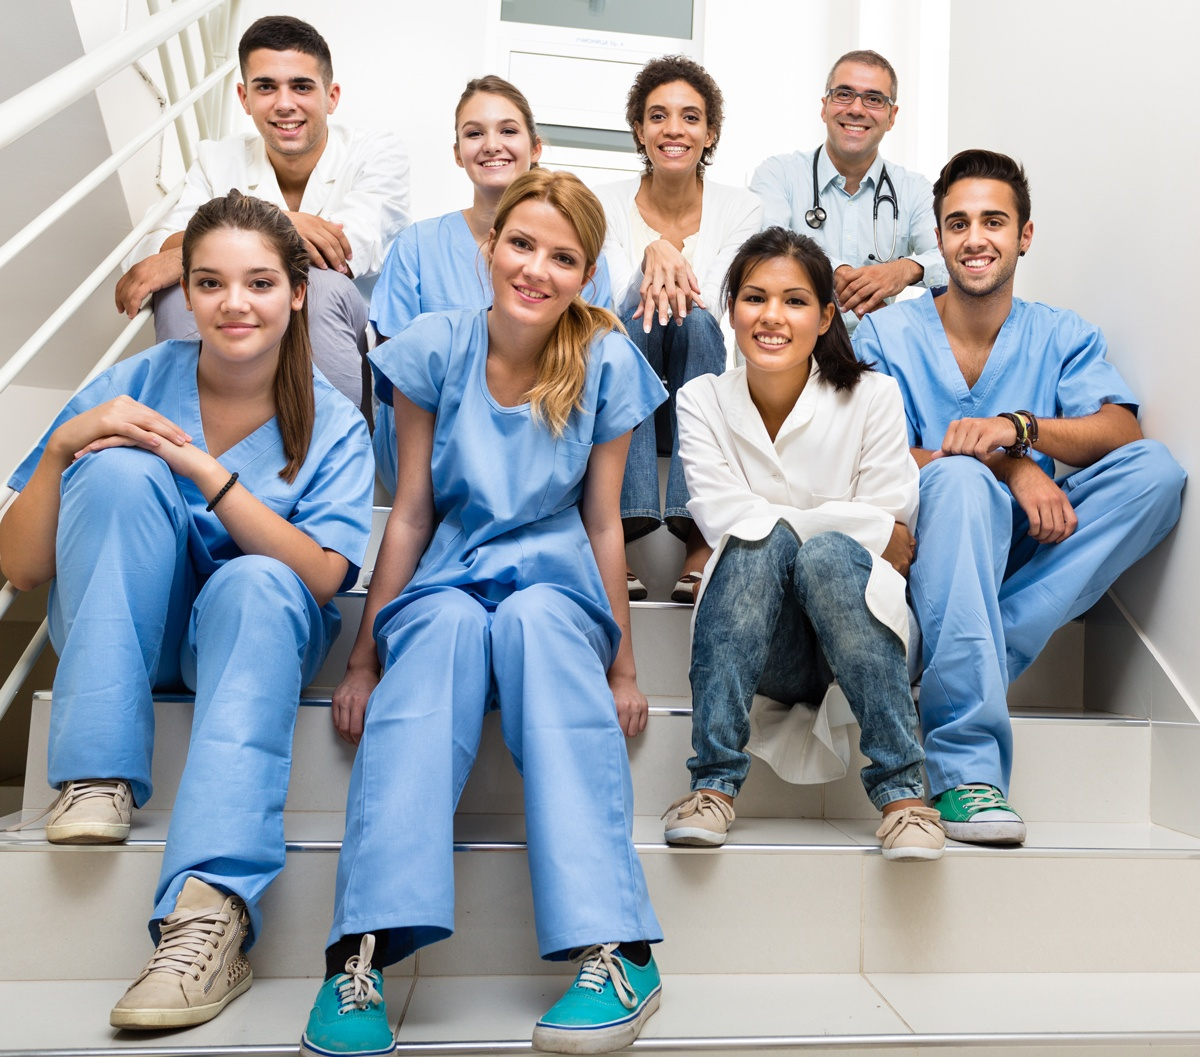 healthcare workers communications